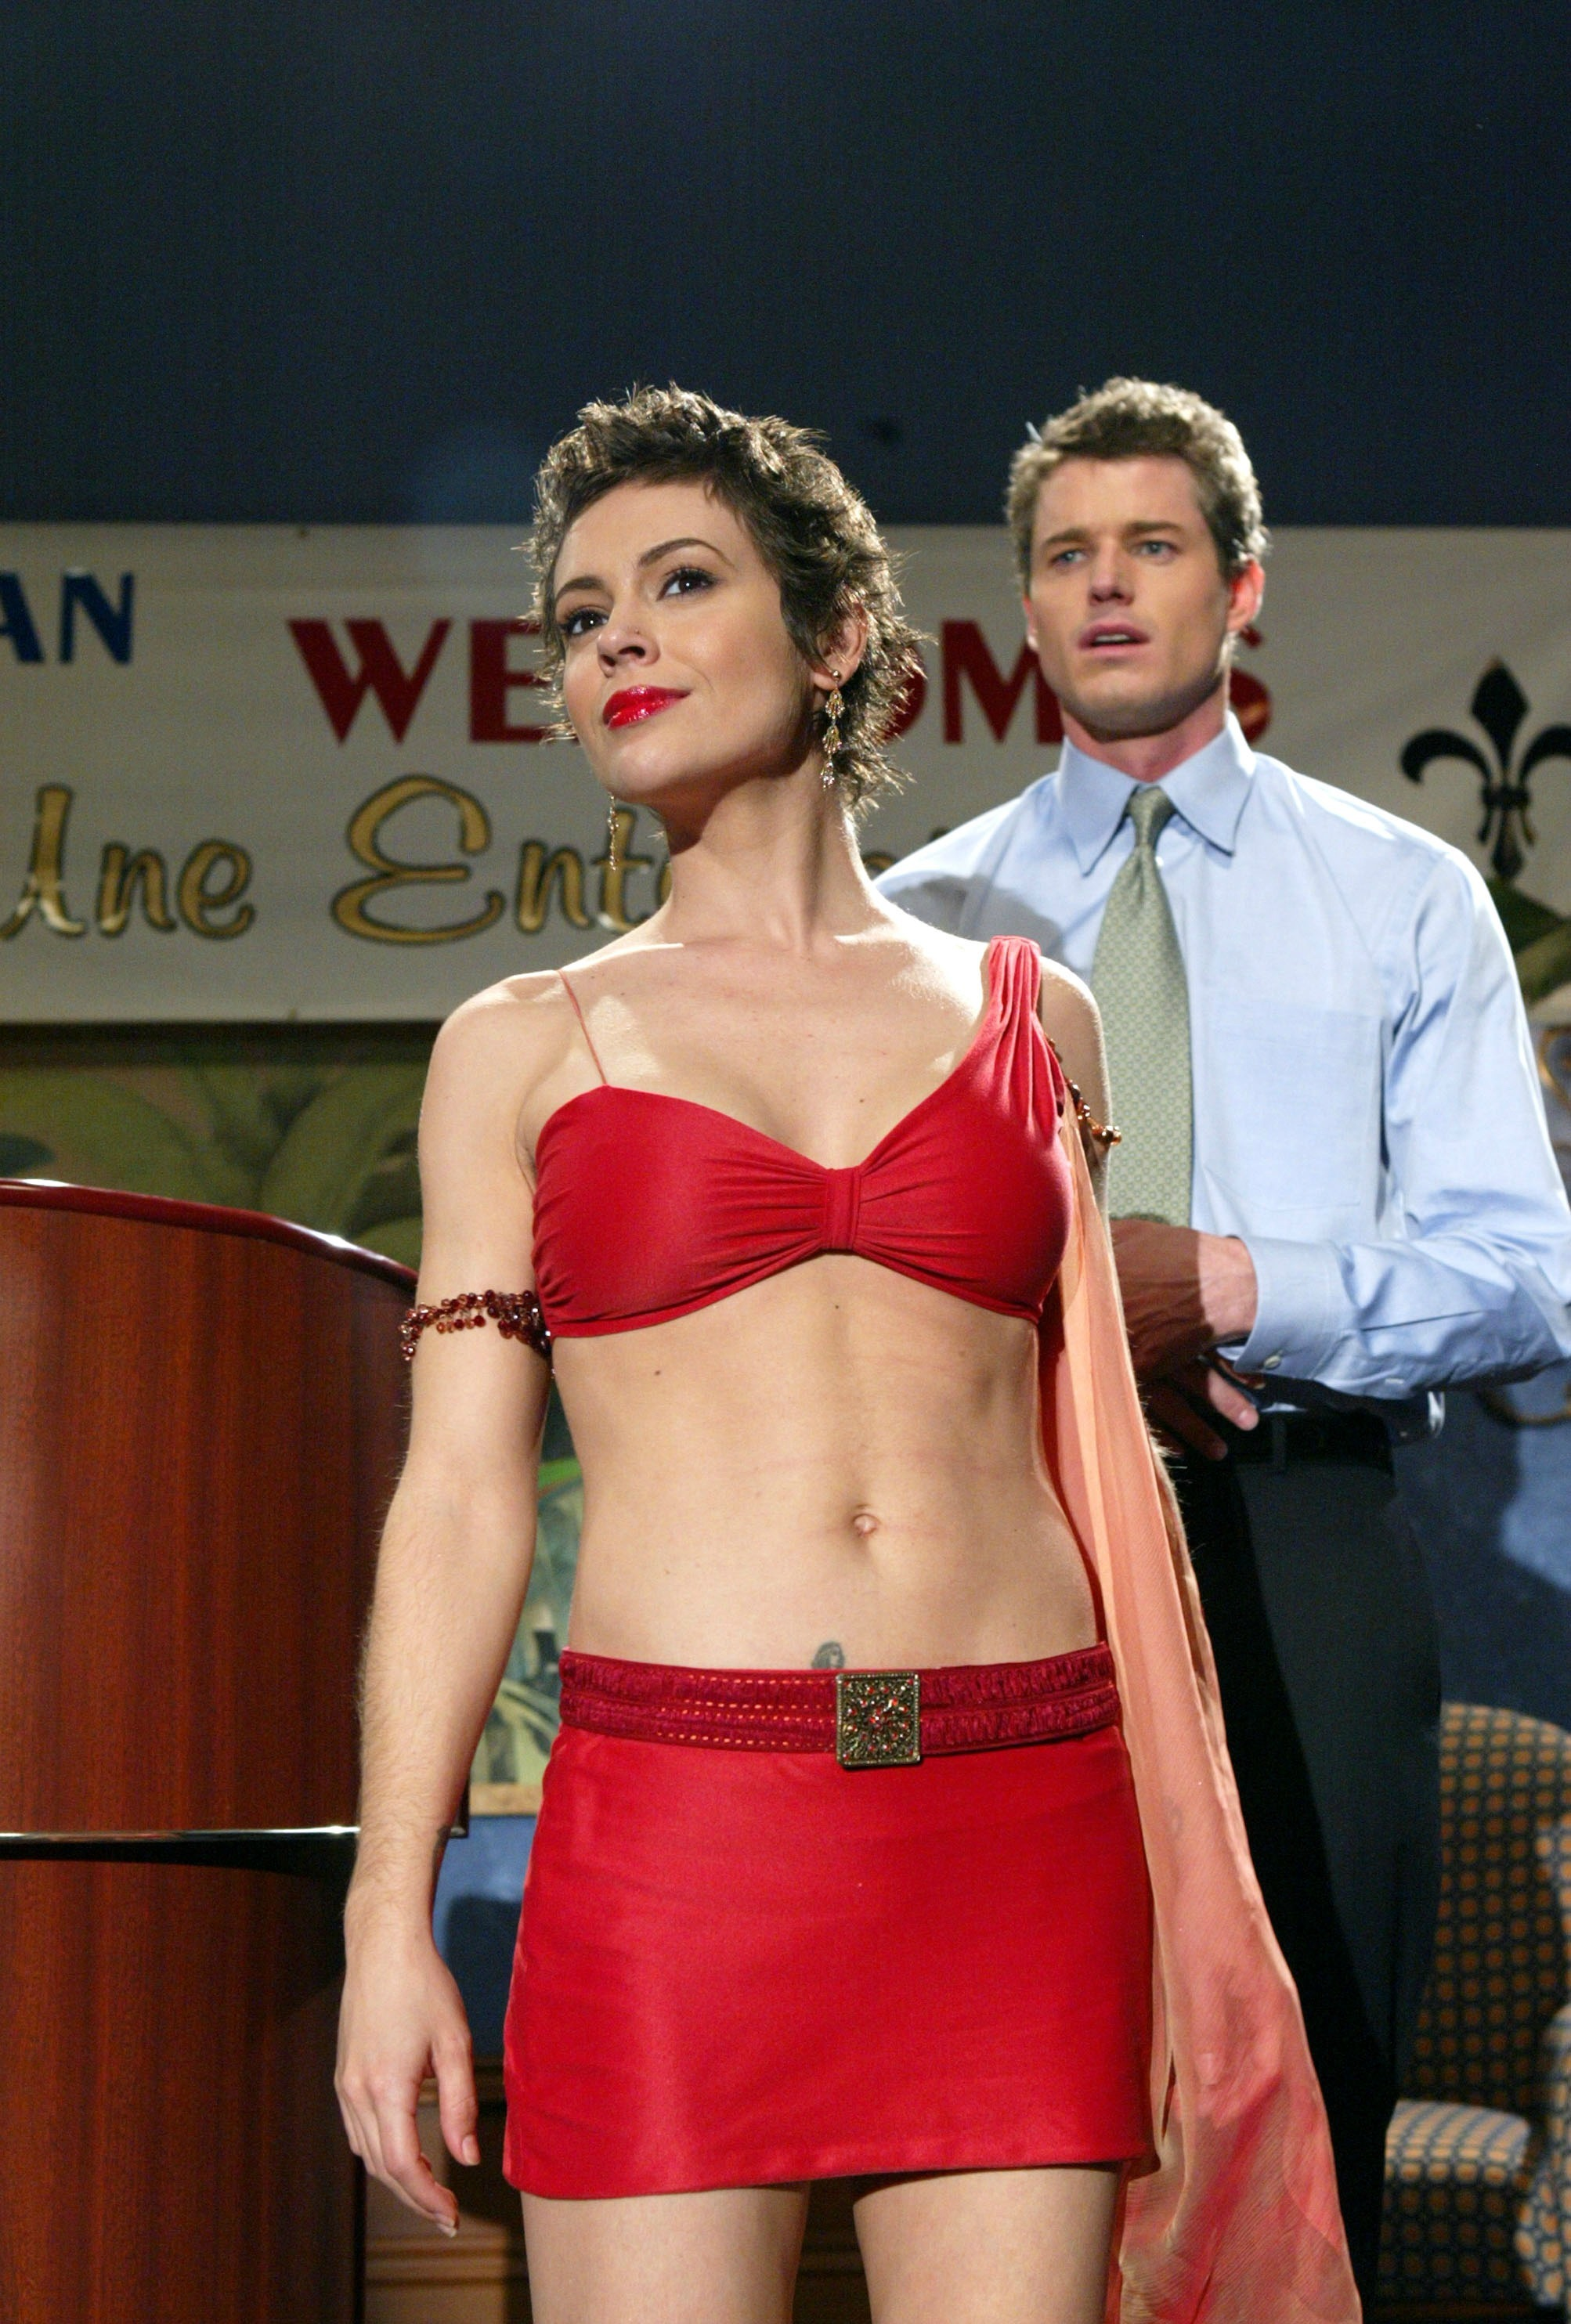 Alyssa Milano and Eric Dane appear in this scene still of the TV series Charmed from 2003.